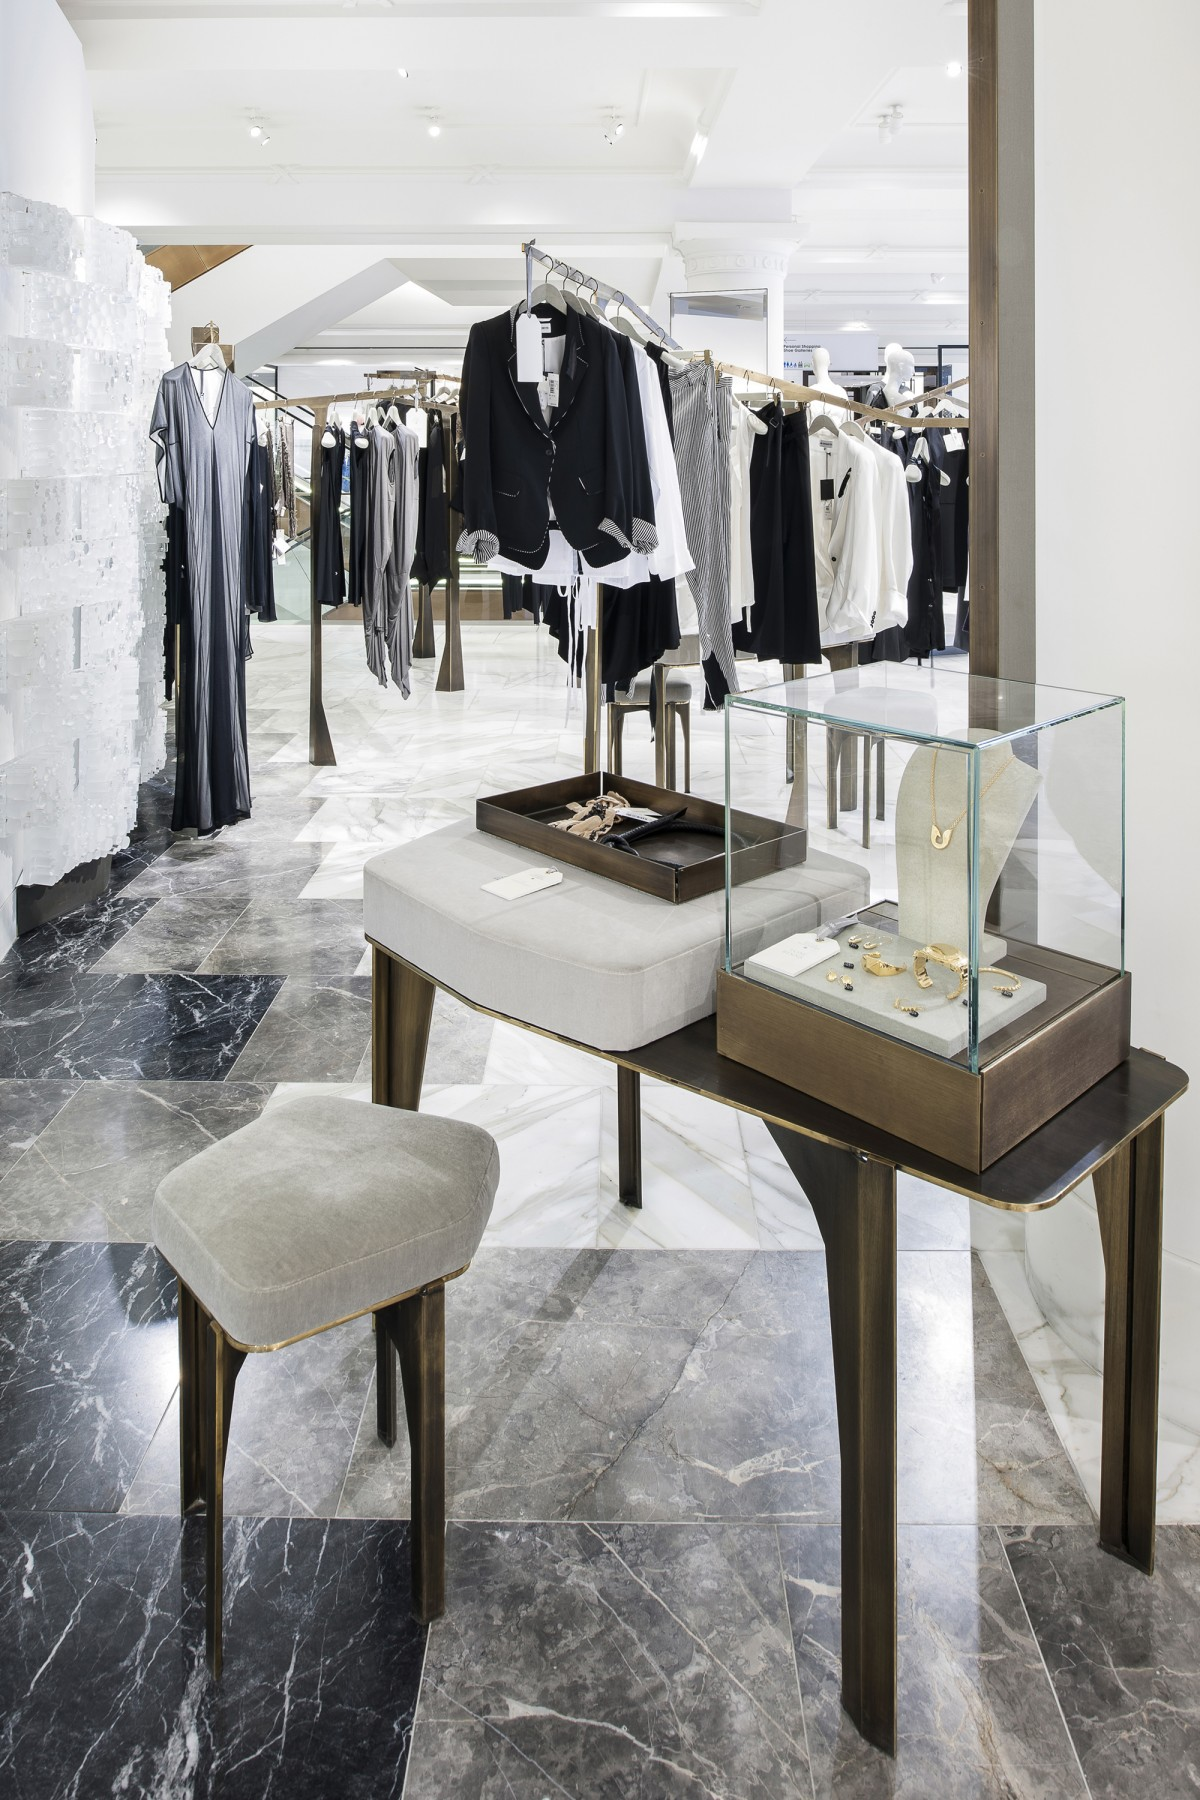 Selfridges-London-designer-fashion-retail-Jamie-Fobert-Architects-shop-marble-floor-womenswear-ret